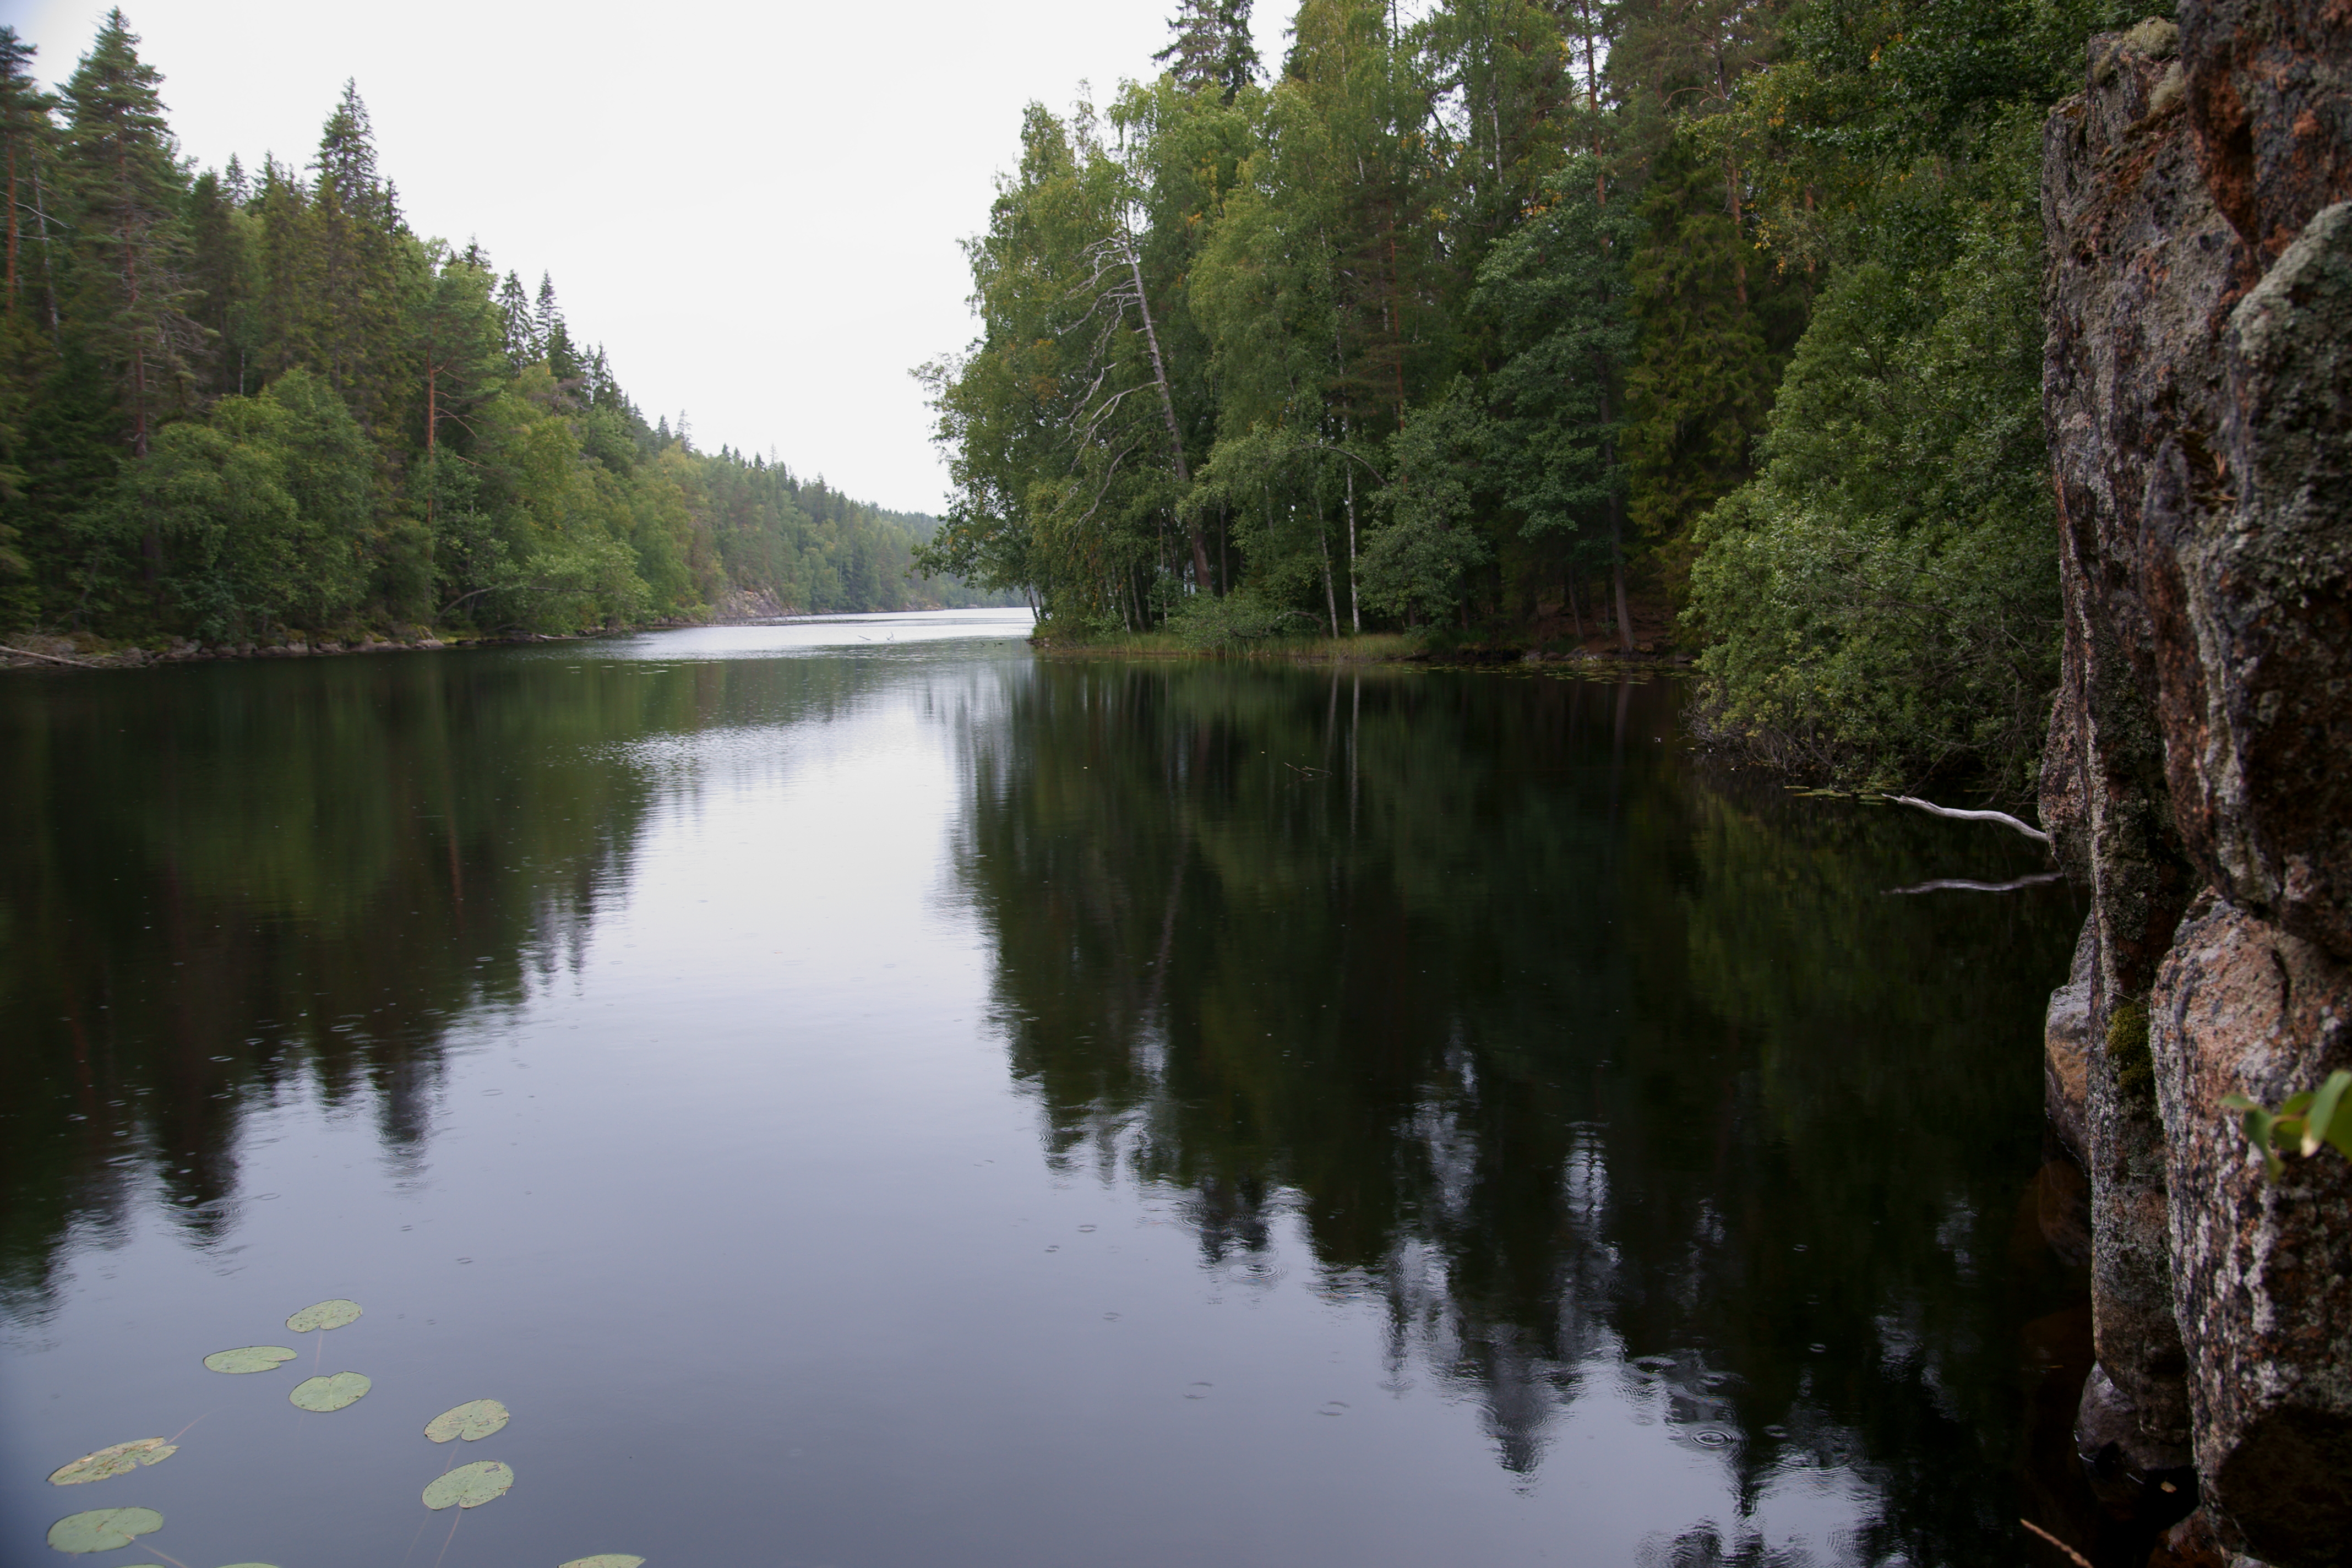 Taiga forest : Climate, Plants, Animals, Biome